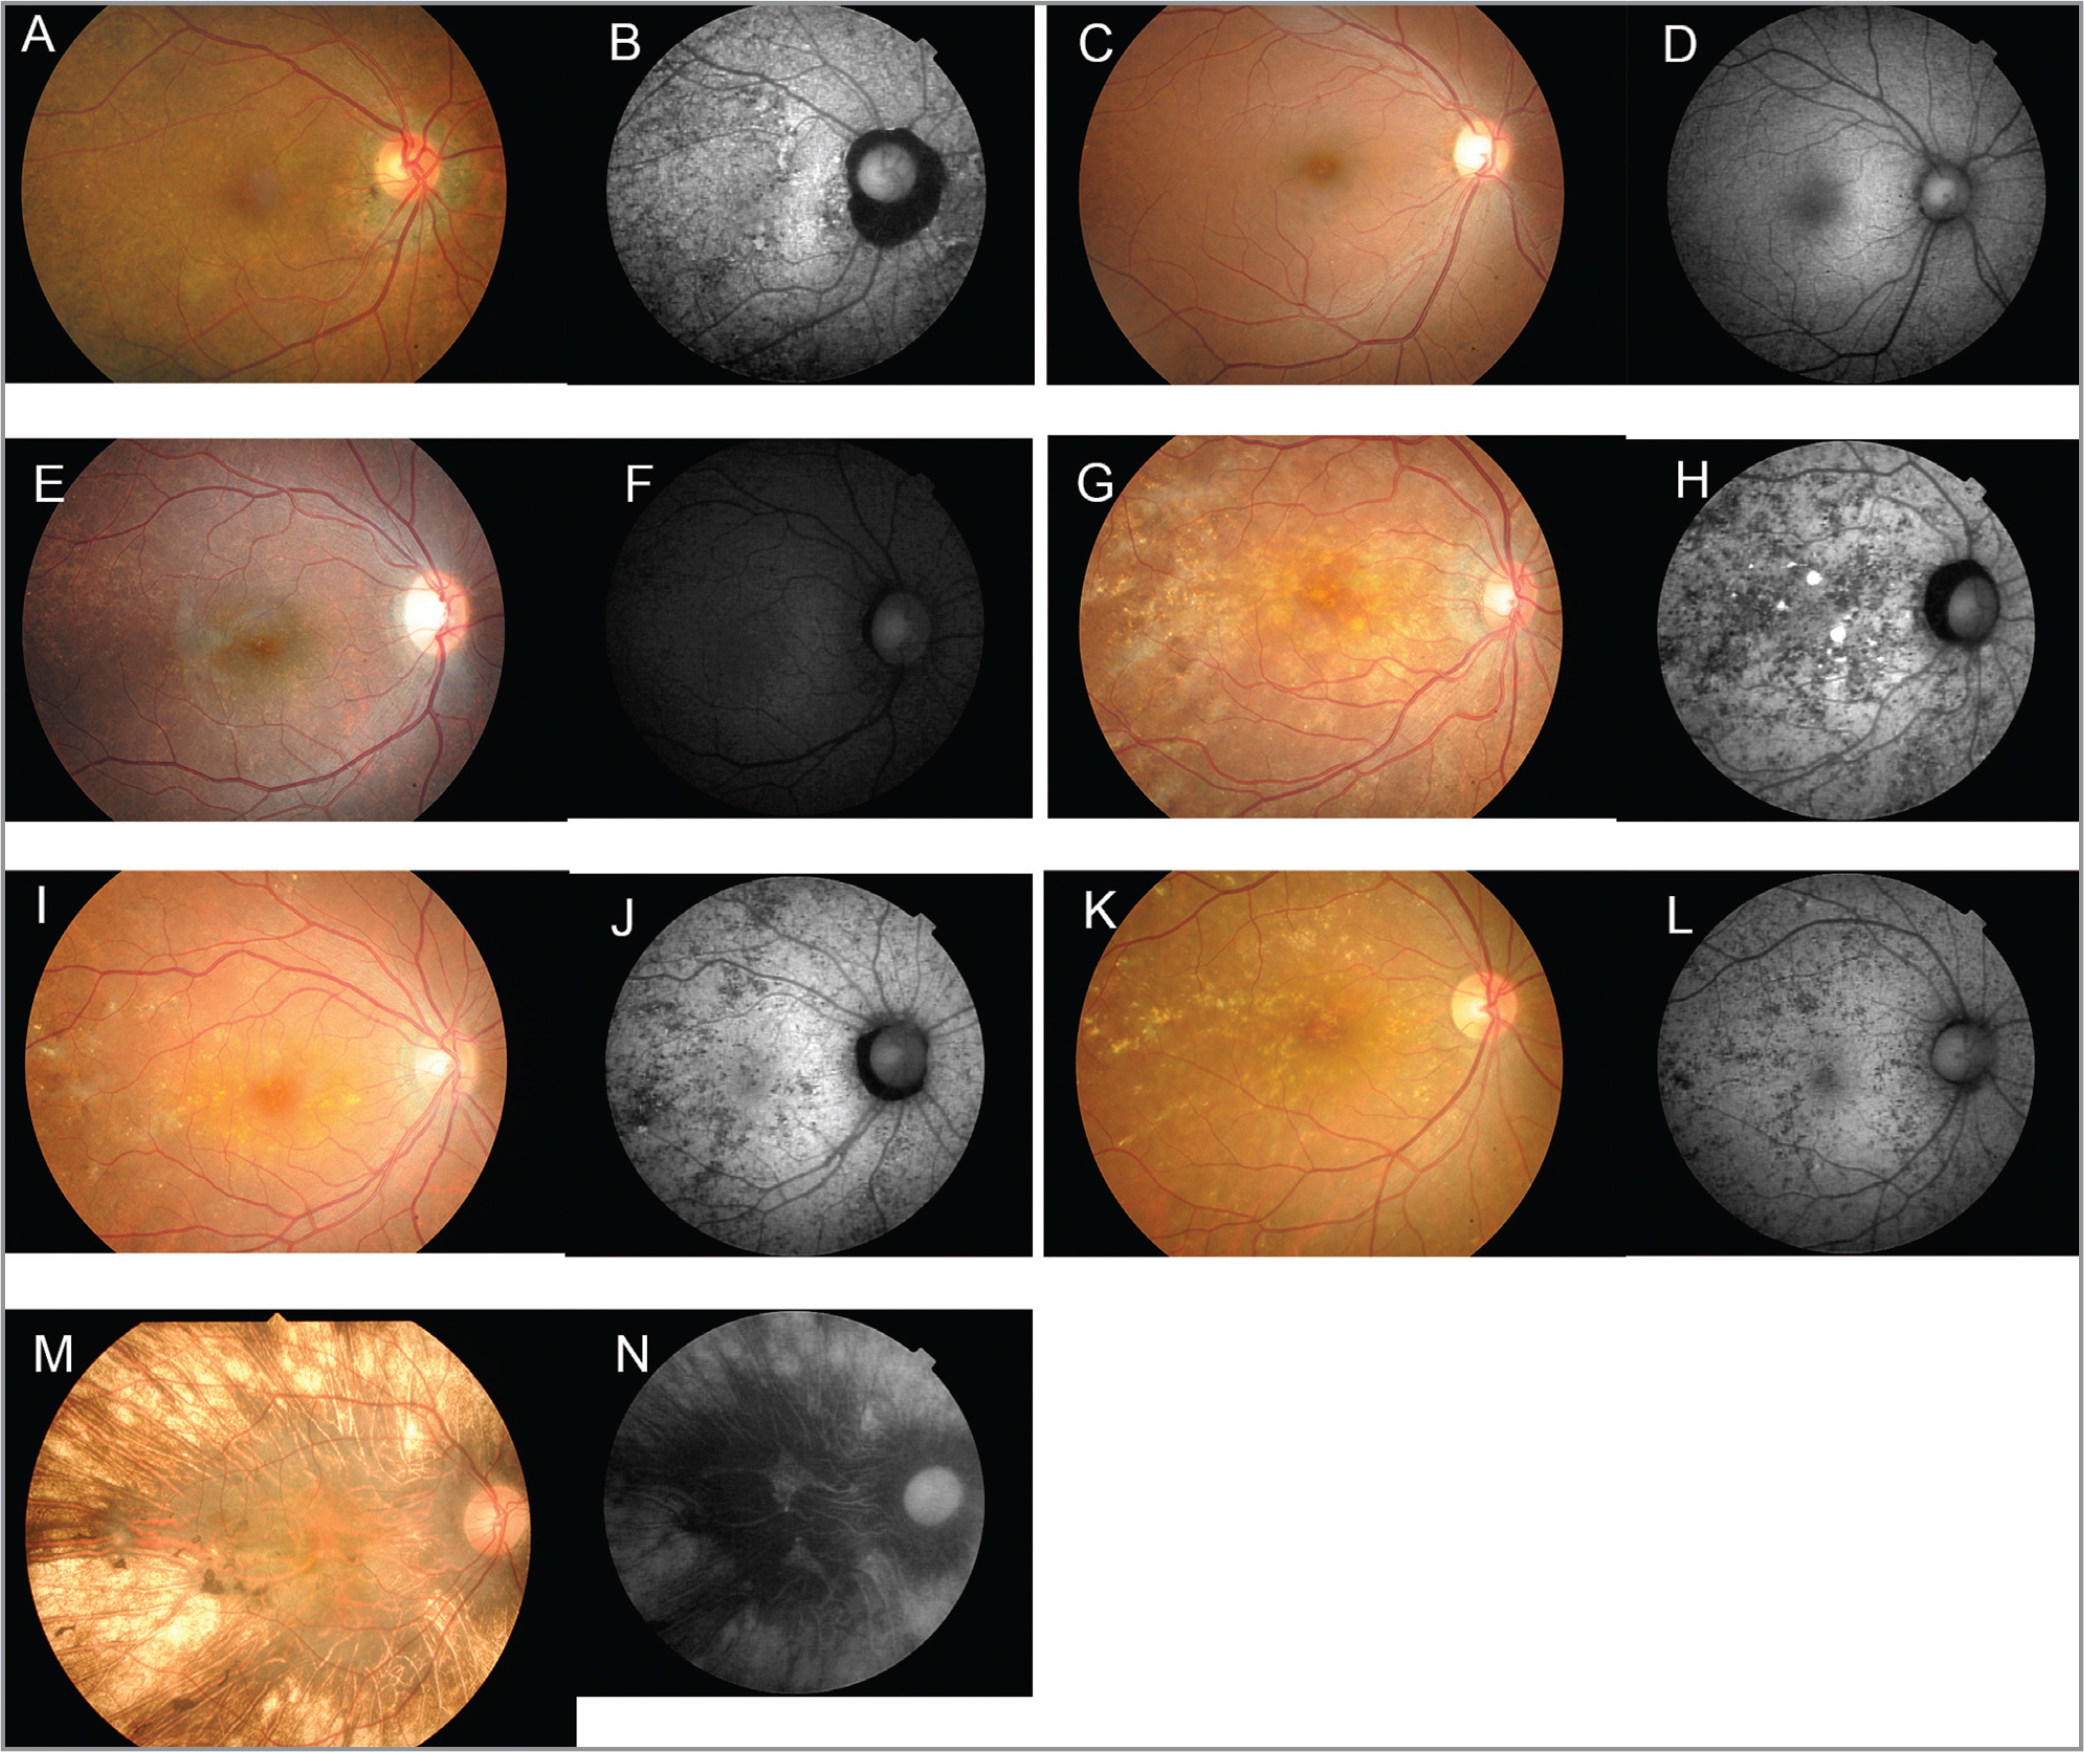 Fundus photographs and autofluorescence images of choroideremia carriers. Fundus photographs (A, C, E, G, I, K, and M) and fundus autofluorescence (FAF) images (B, D, F, H, J, L, and N) from Carriers 1 (A, B), 2 (C, D), 3 (E, F), 4 (G, H), 5 (I, J), and 6 (K, L) are shown. Results from a male patient with choroideremia (M, N) are also shown for comparison. Fundus photograph of Case 2 shows almost no abnormality, whereas Cases 1, 4, 5, and 6 show many drusenoid deposits. FAF images of Case 4 show mixed hyper- and hypoautofluorescence.